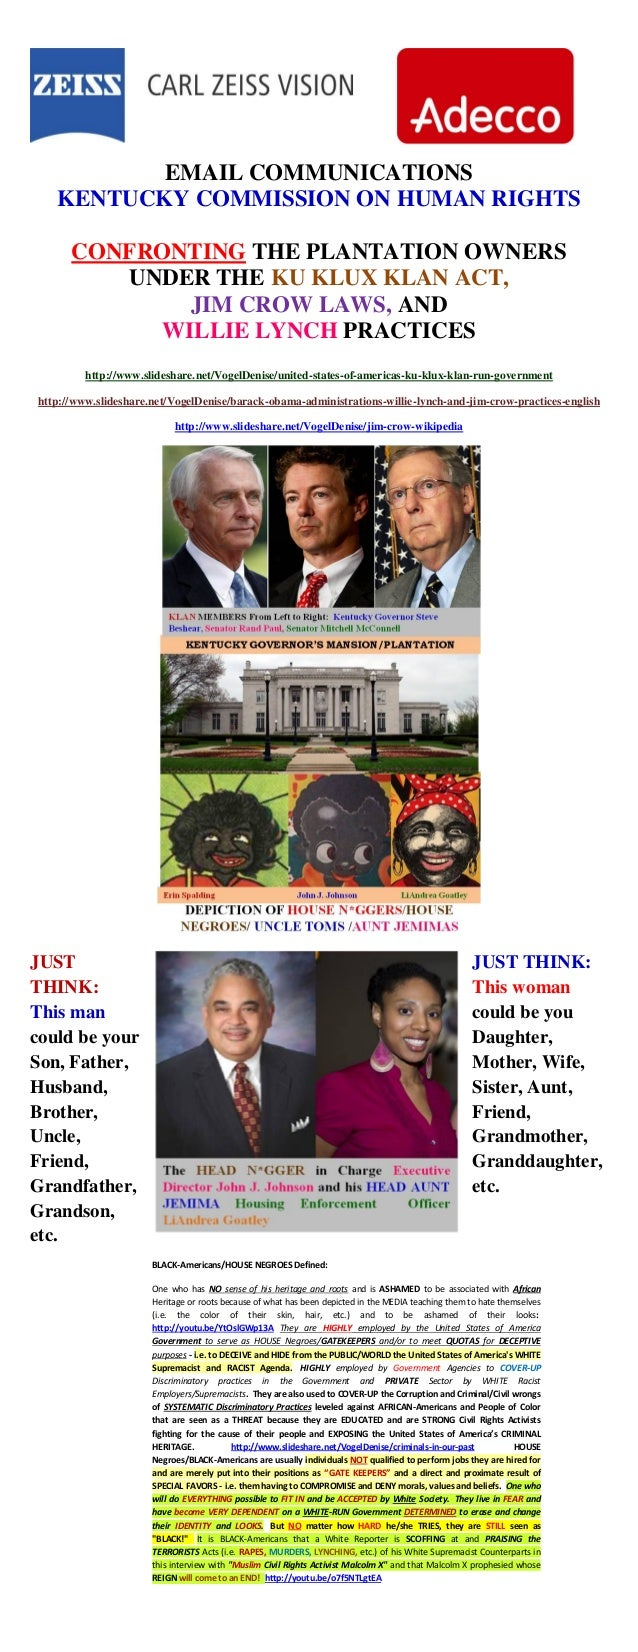 EMAIL COMMUNICATIONS KENTUCKY COMMISSION ON HUMAN RIGHTS CONFRONTING THE PLANTATION OWNERS UNDER THE KU KLUX KLAN ACT, JIM...